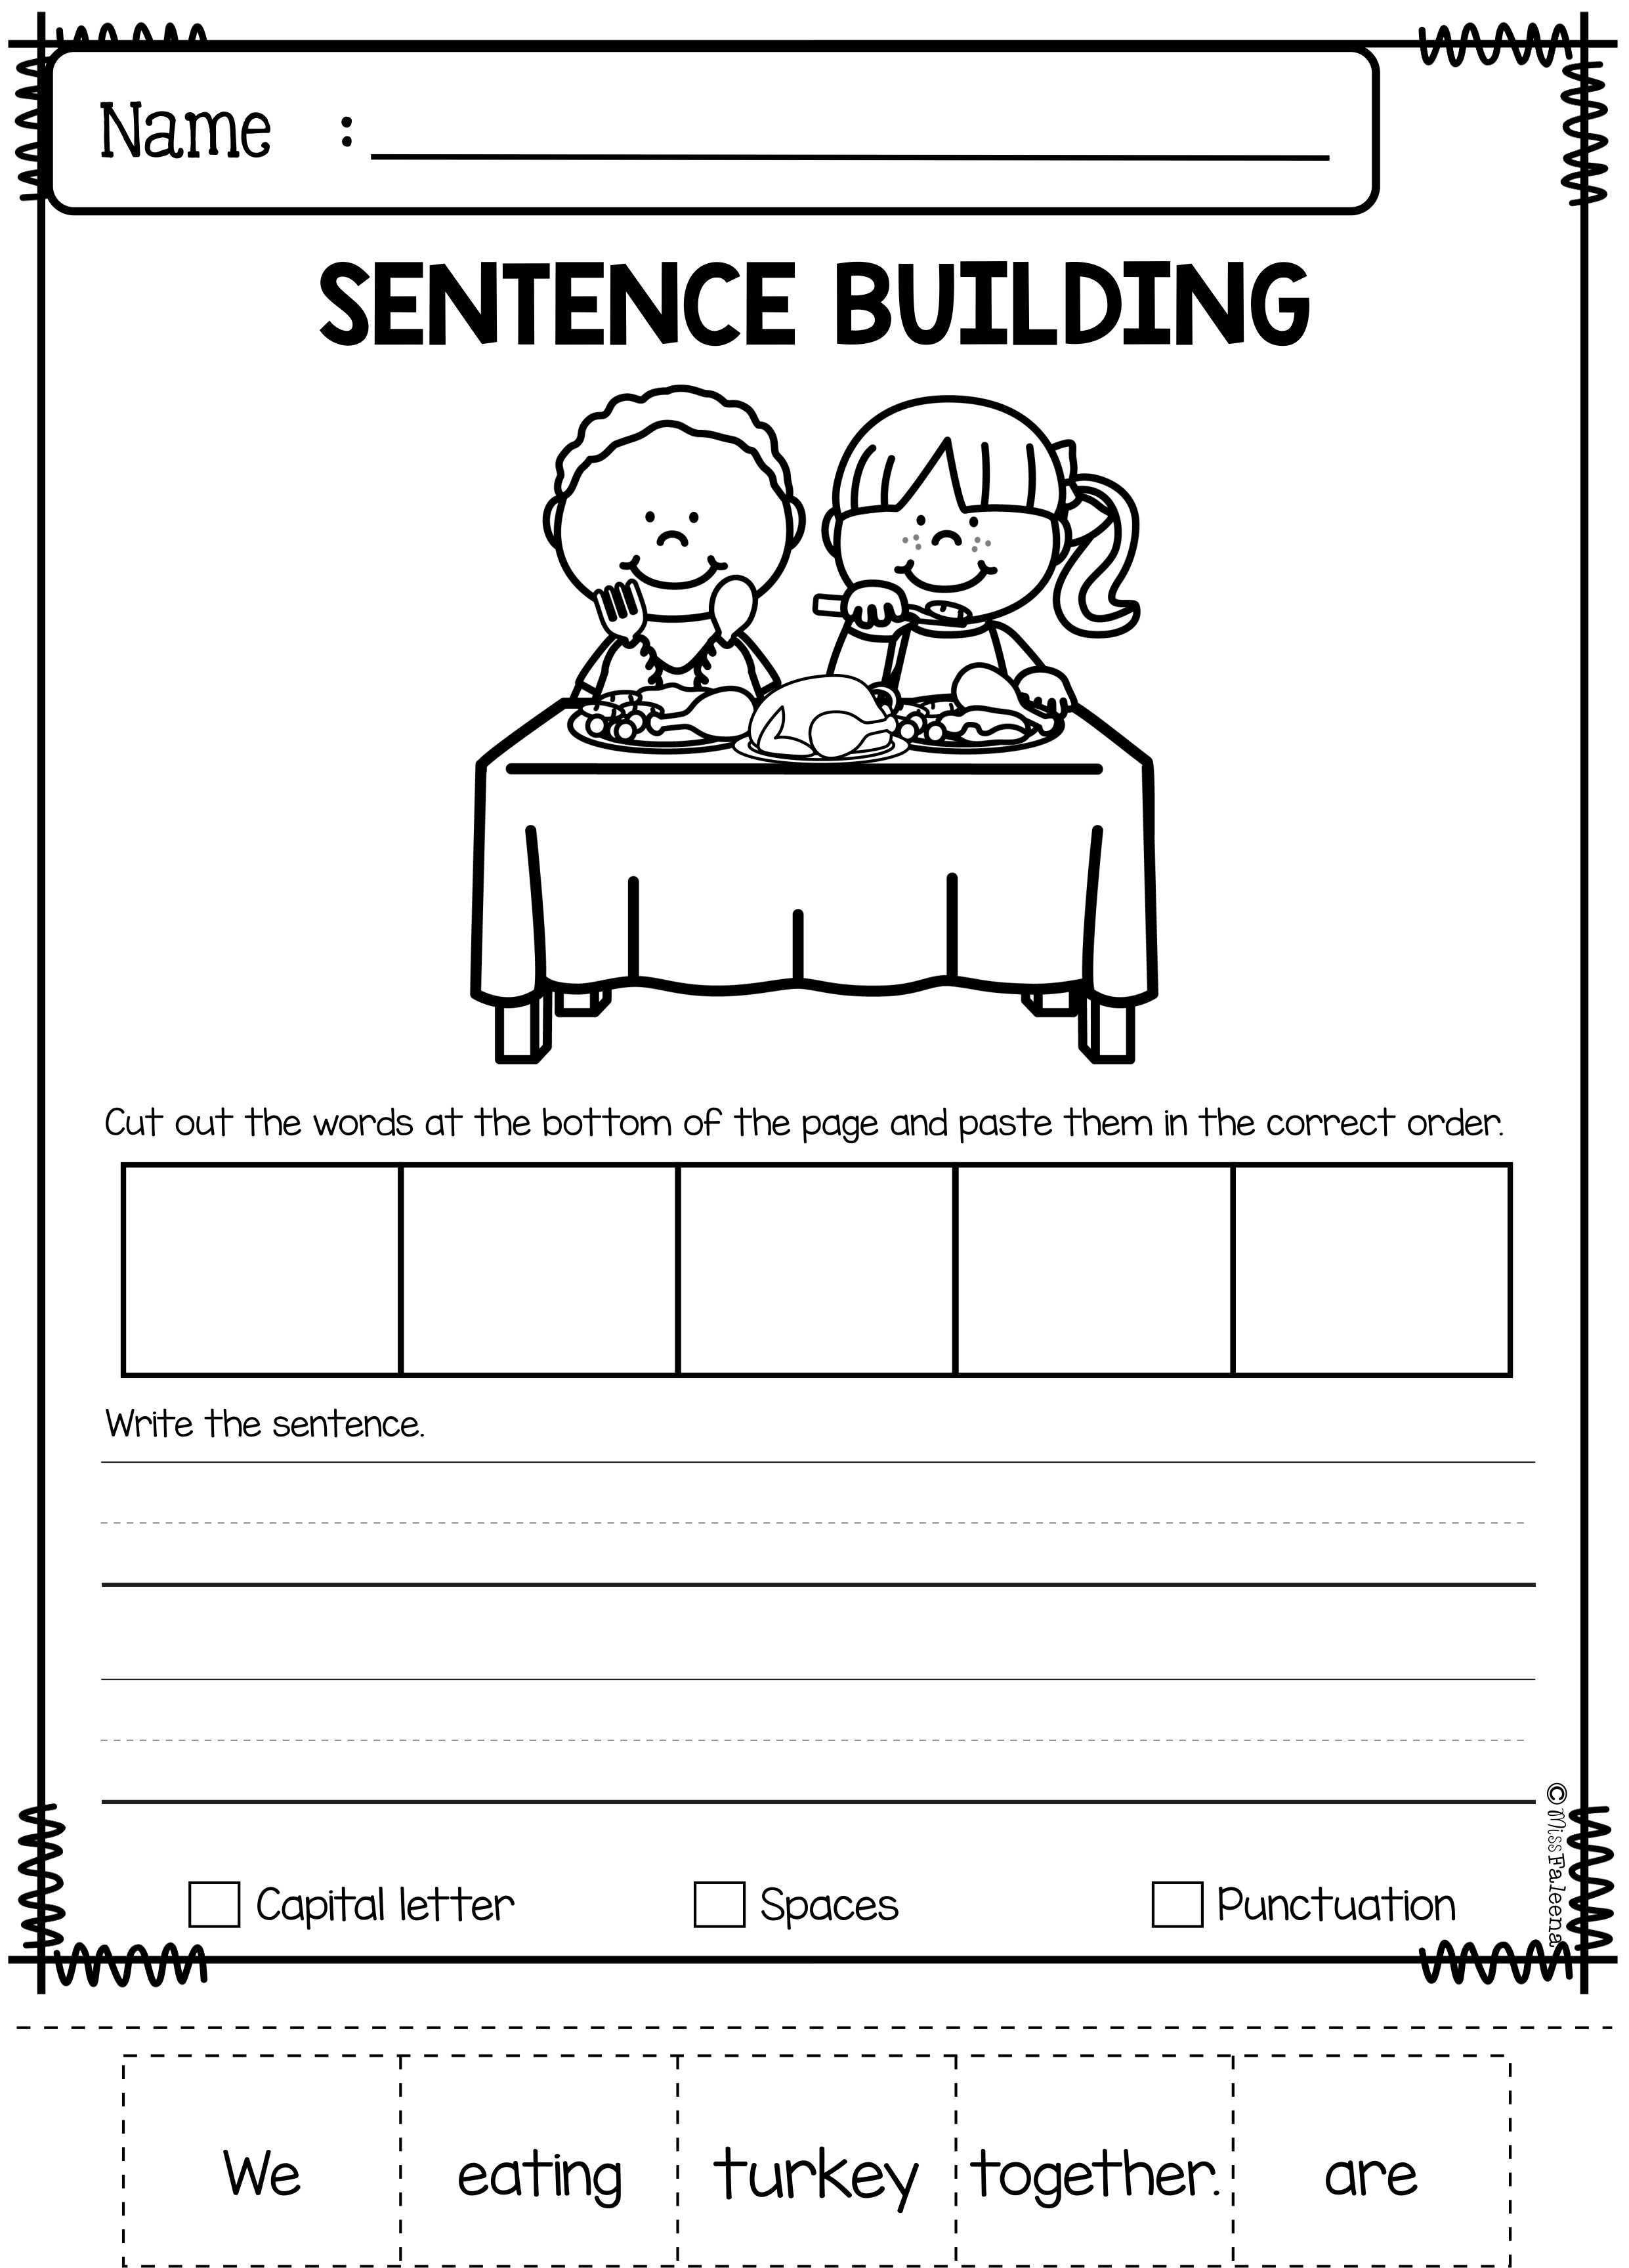 november sentence building has 30 pages of sentence building worksheets this product will teach. Black Bedroom Furniture Sets. Home Design Ideas